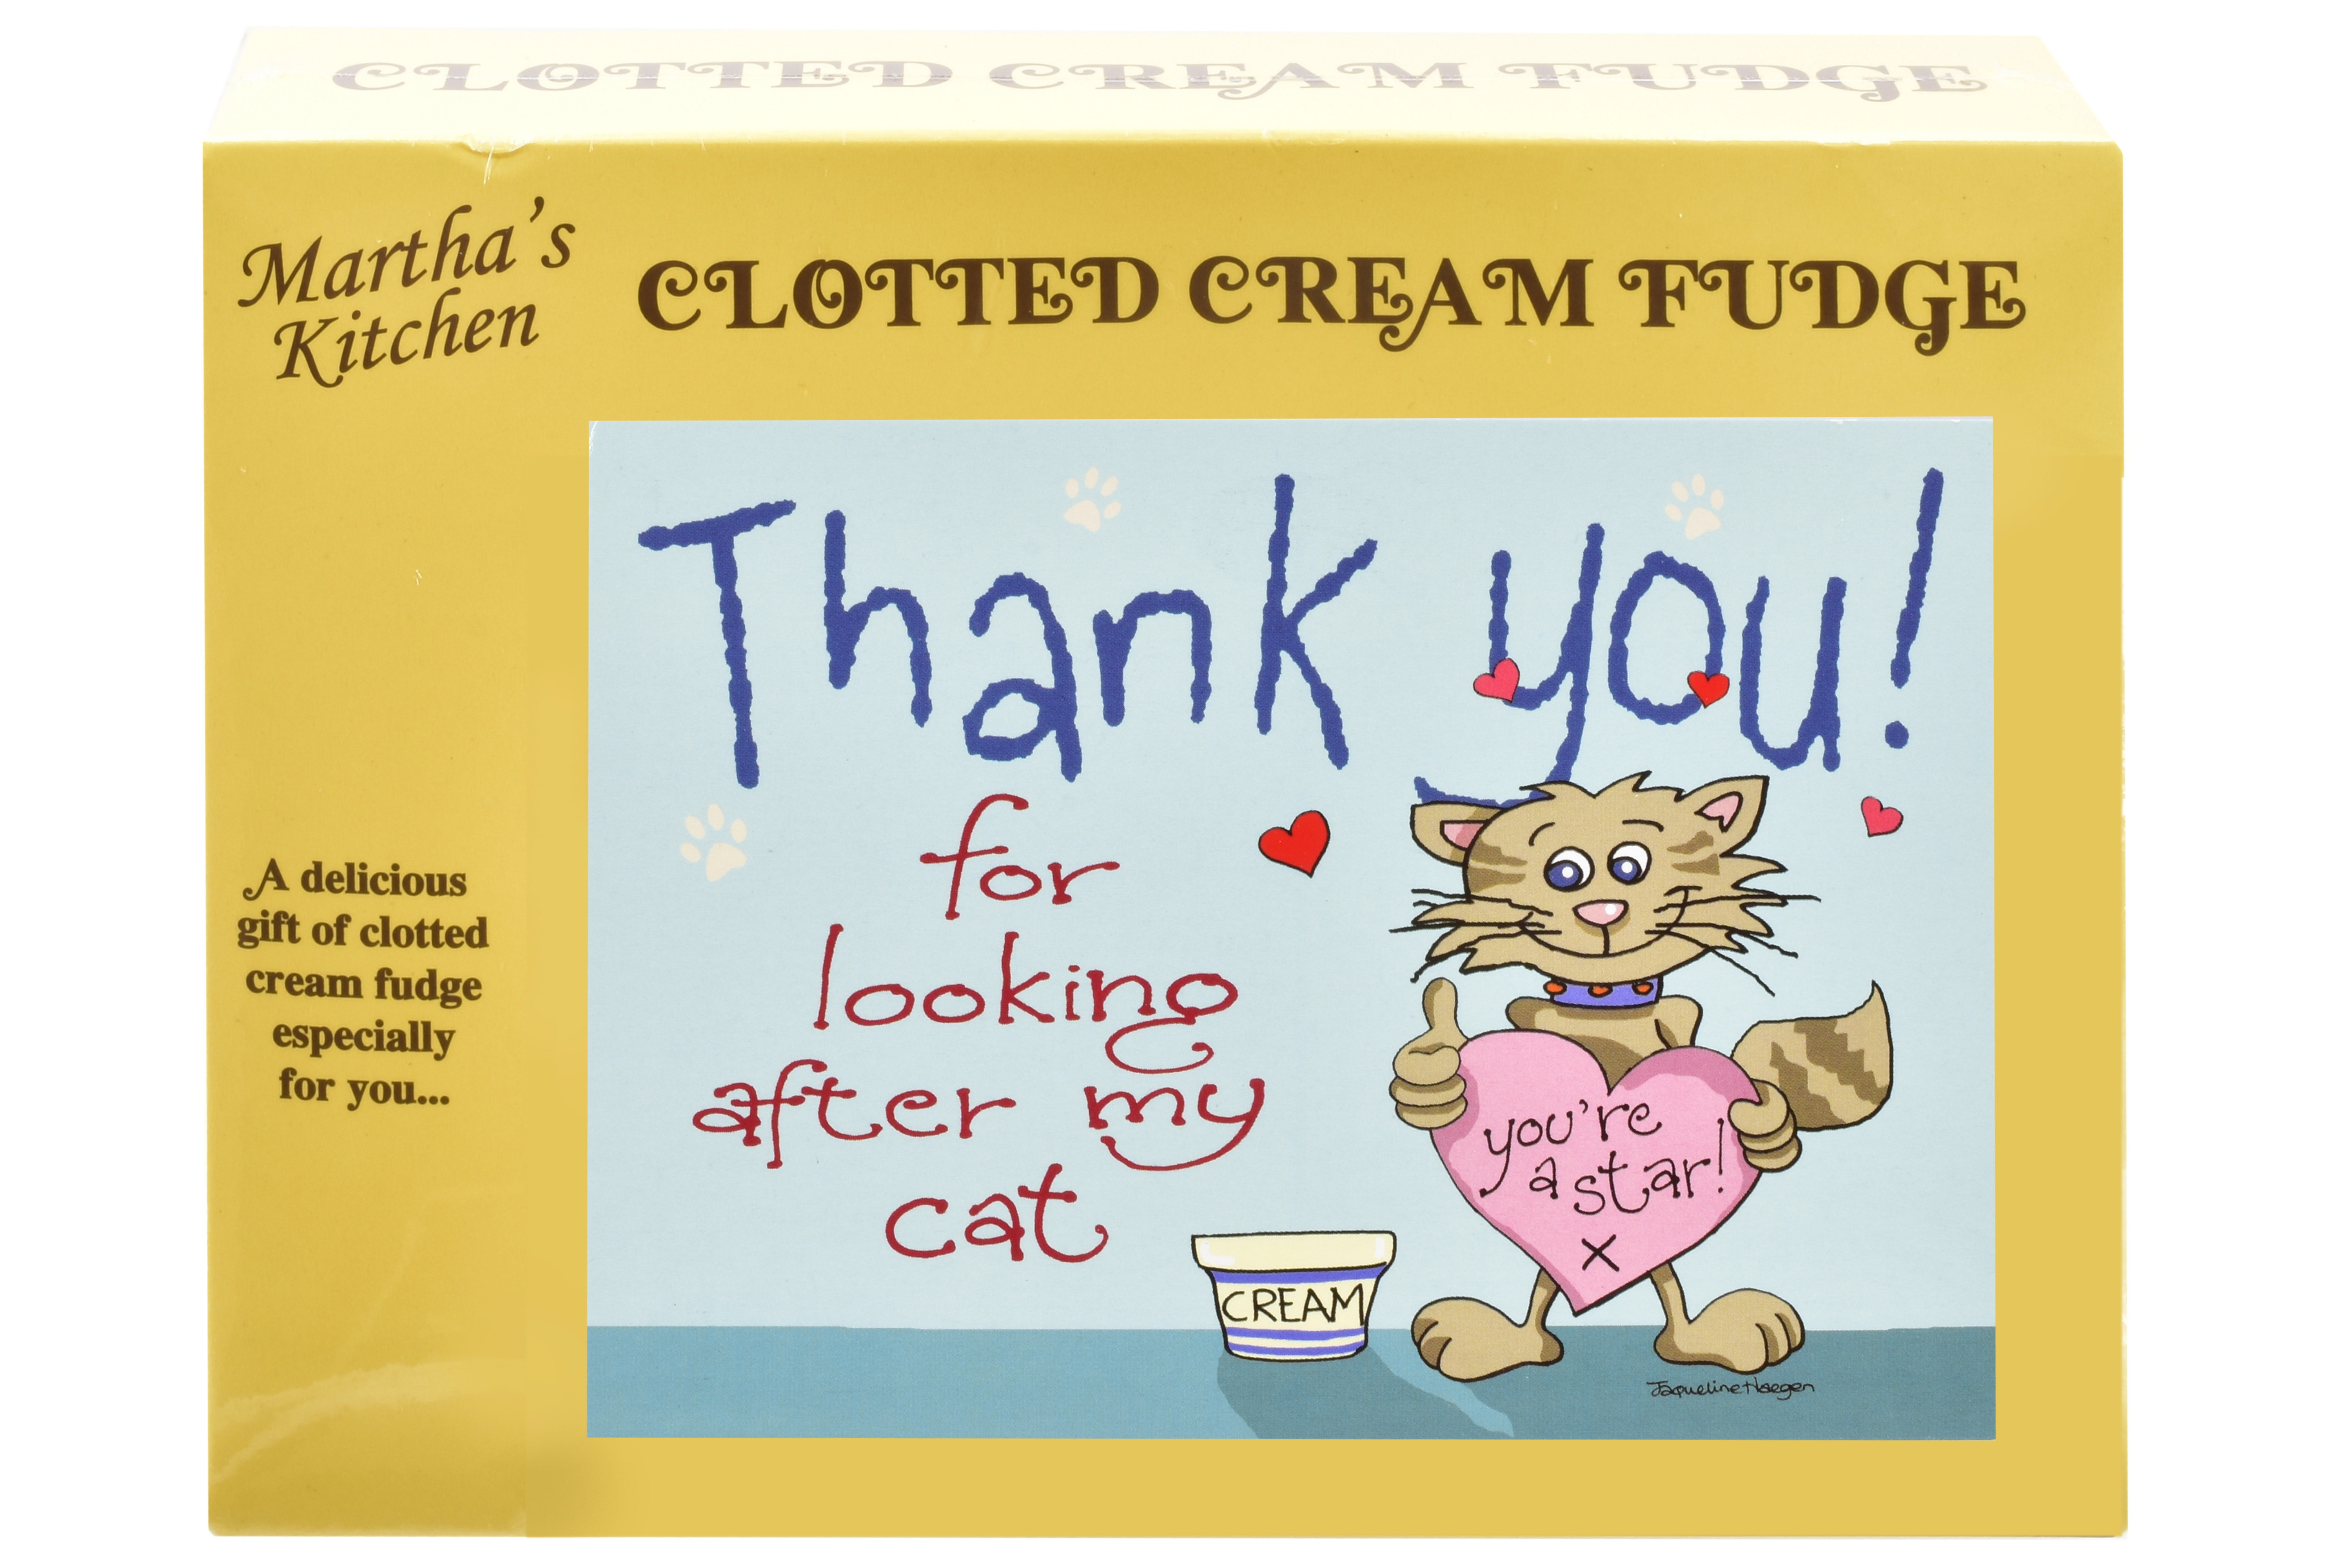 100g Clotted Cream Fudge 'Cat' Postcard Box